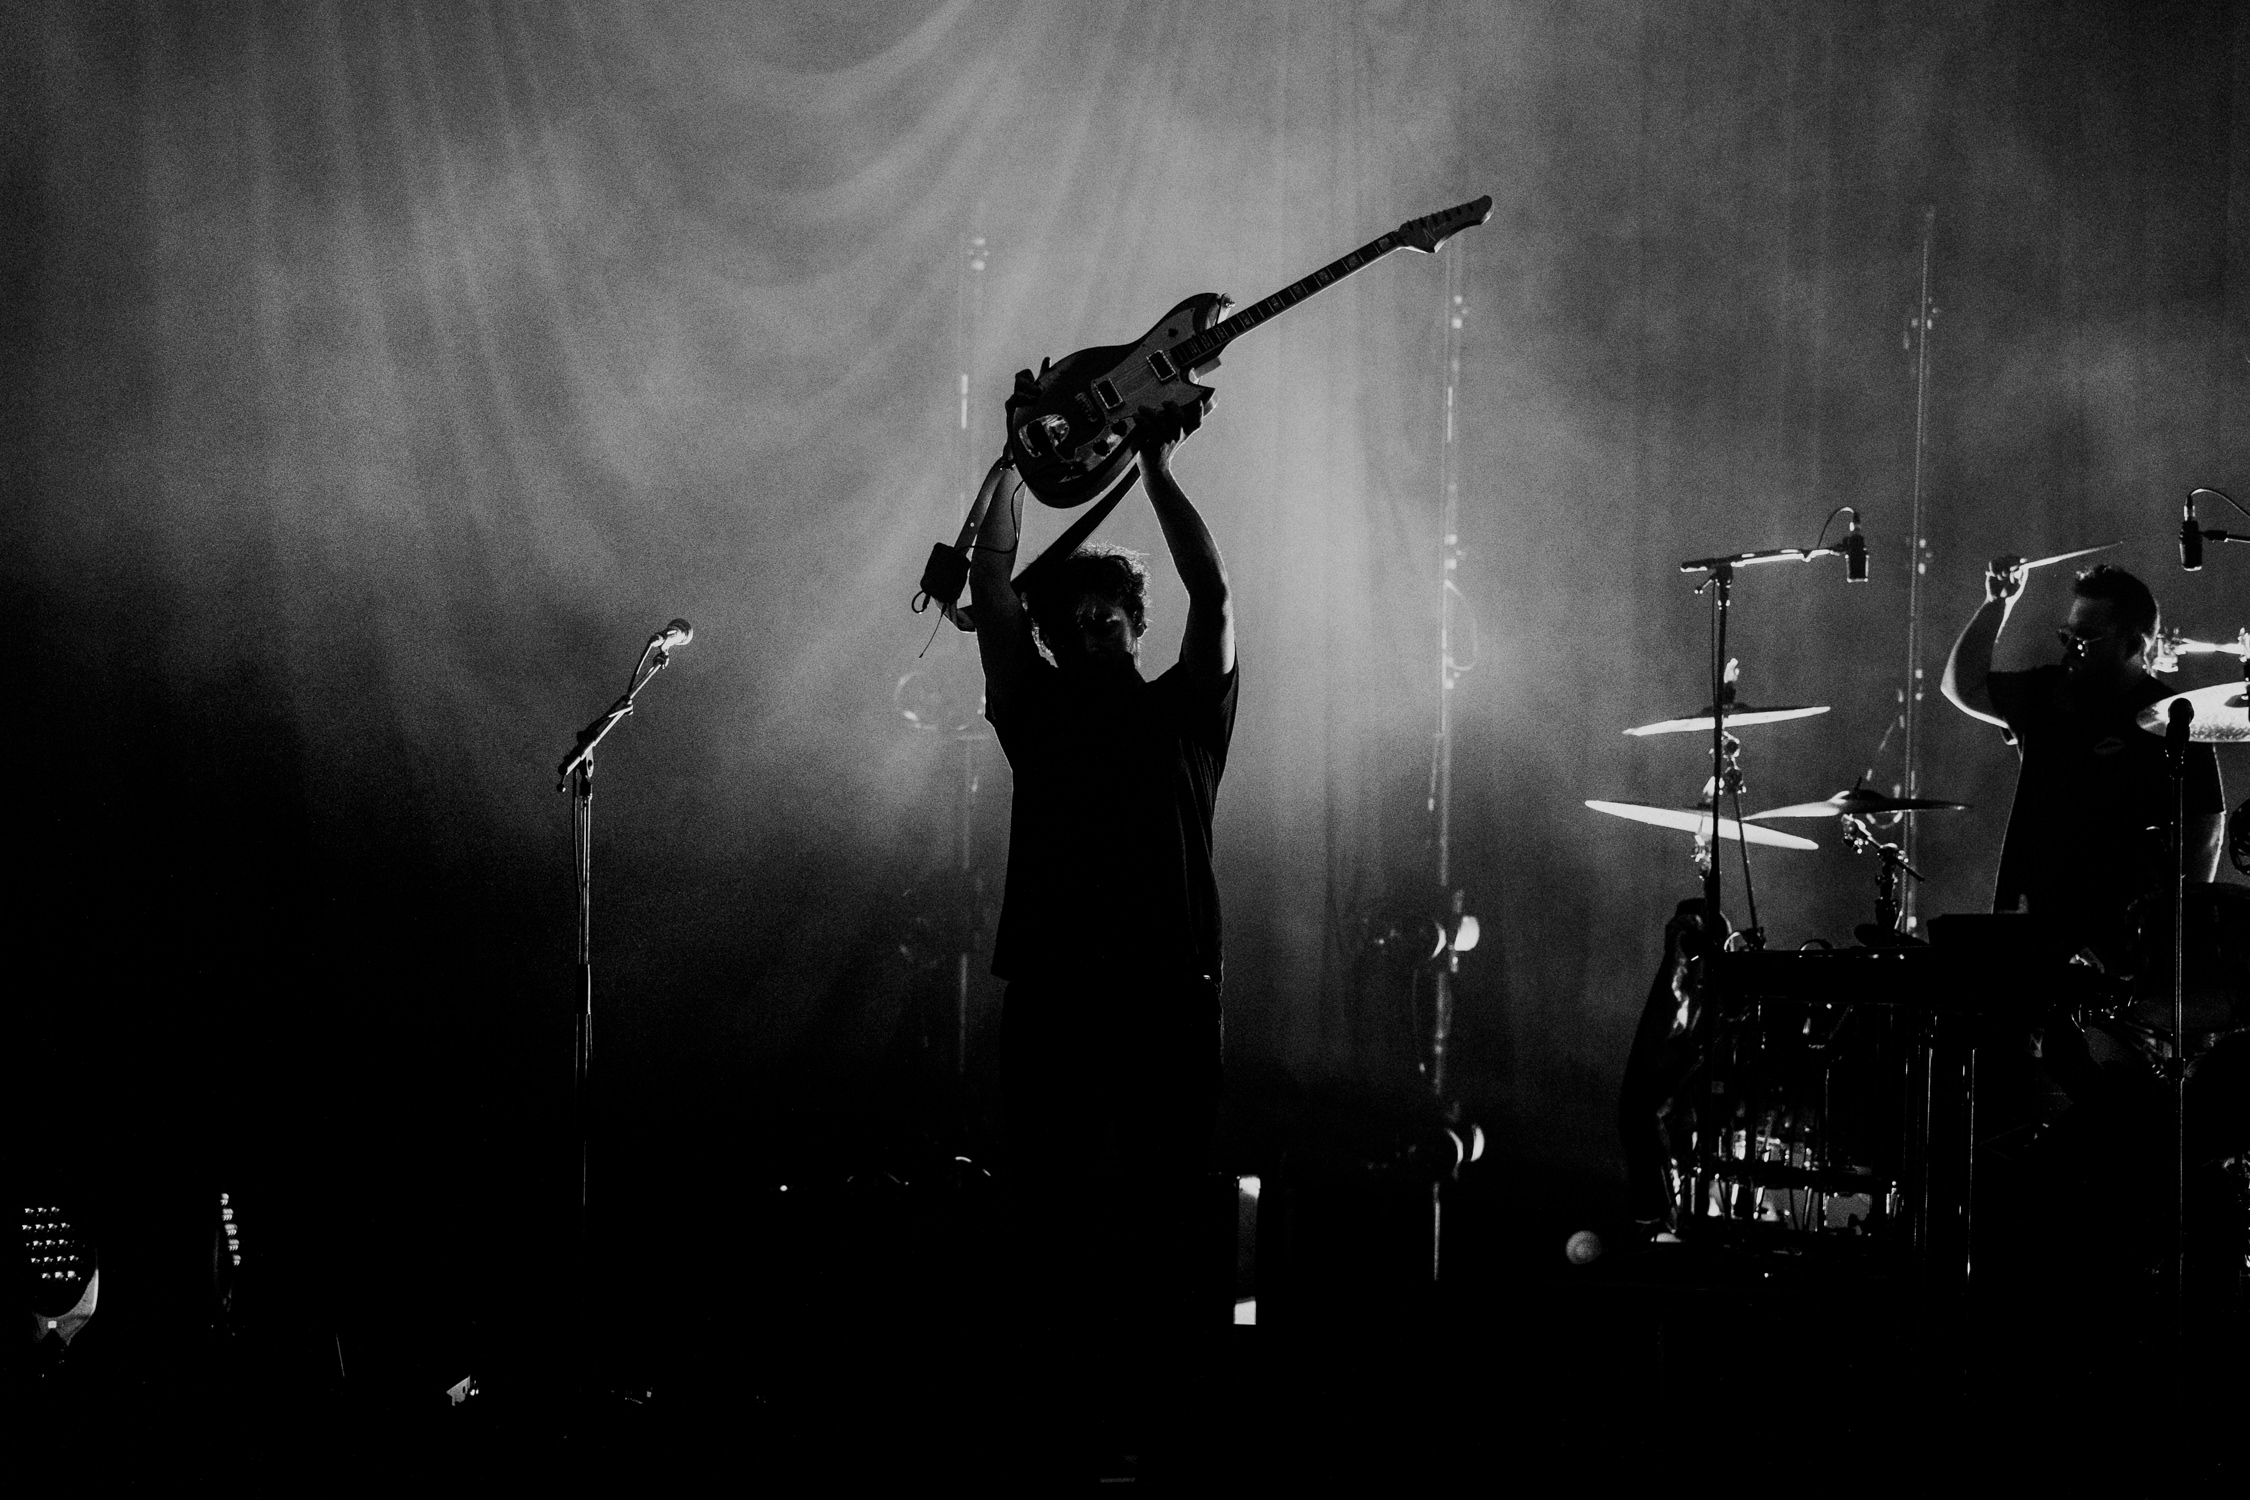 eli-hold-up-guitar-moody-silhouette-walk-the-moon-AnnaLeeMedia